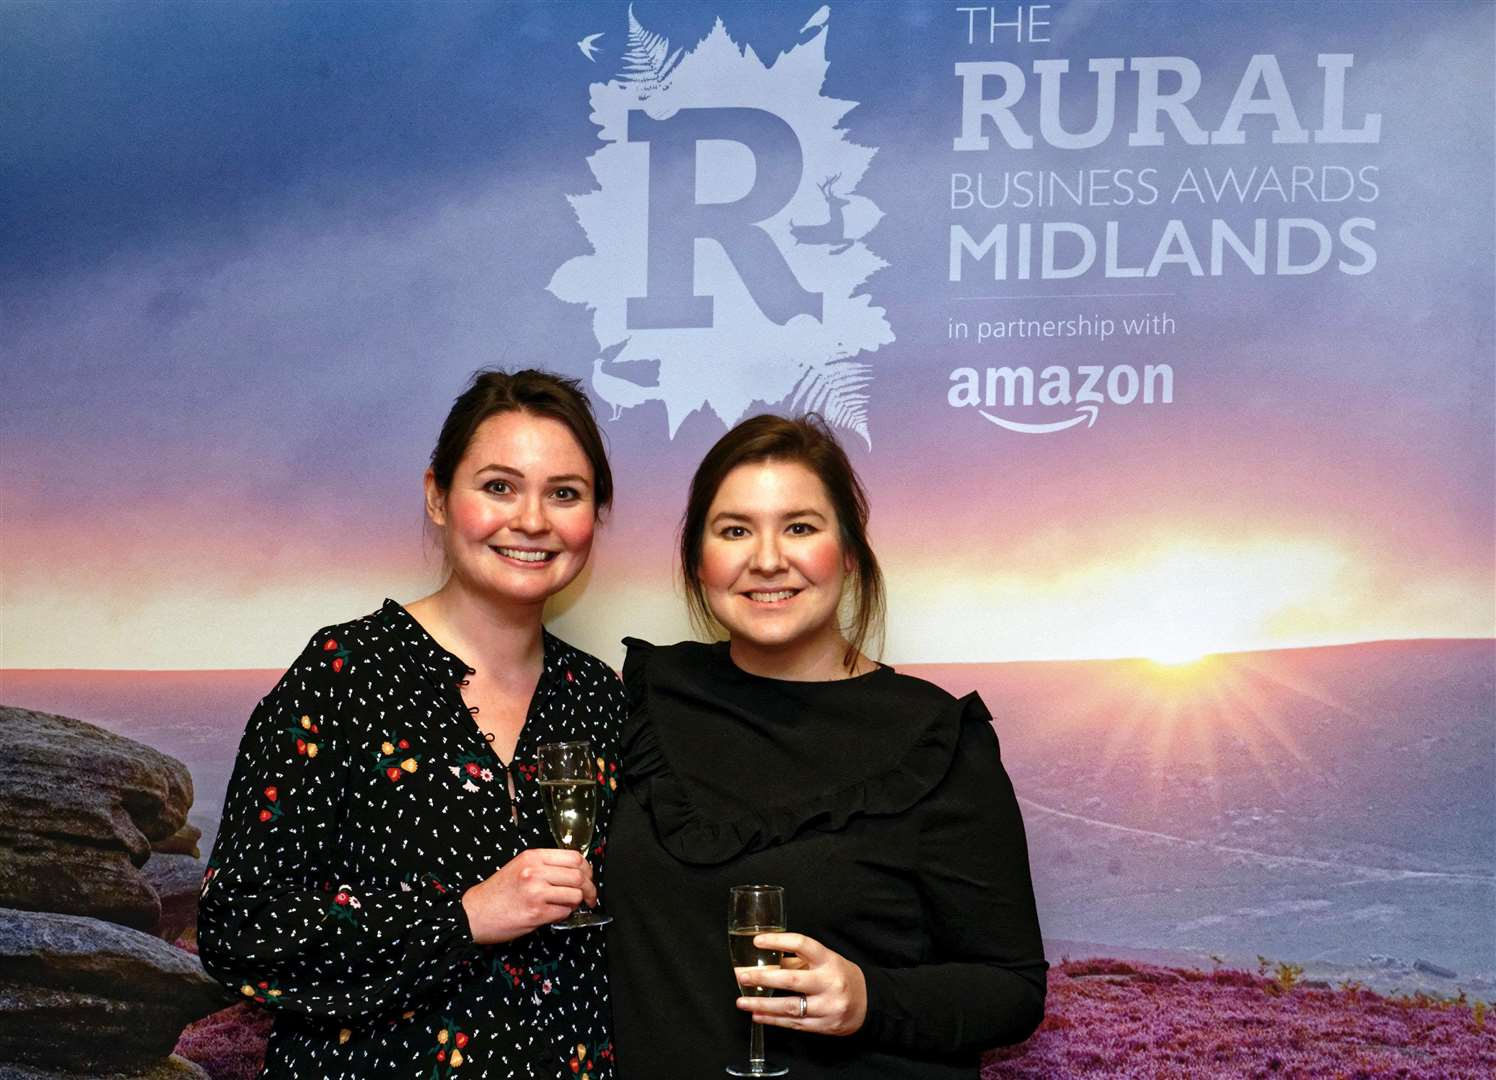 Rural Business Awards Midlands (7040944)